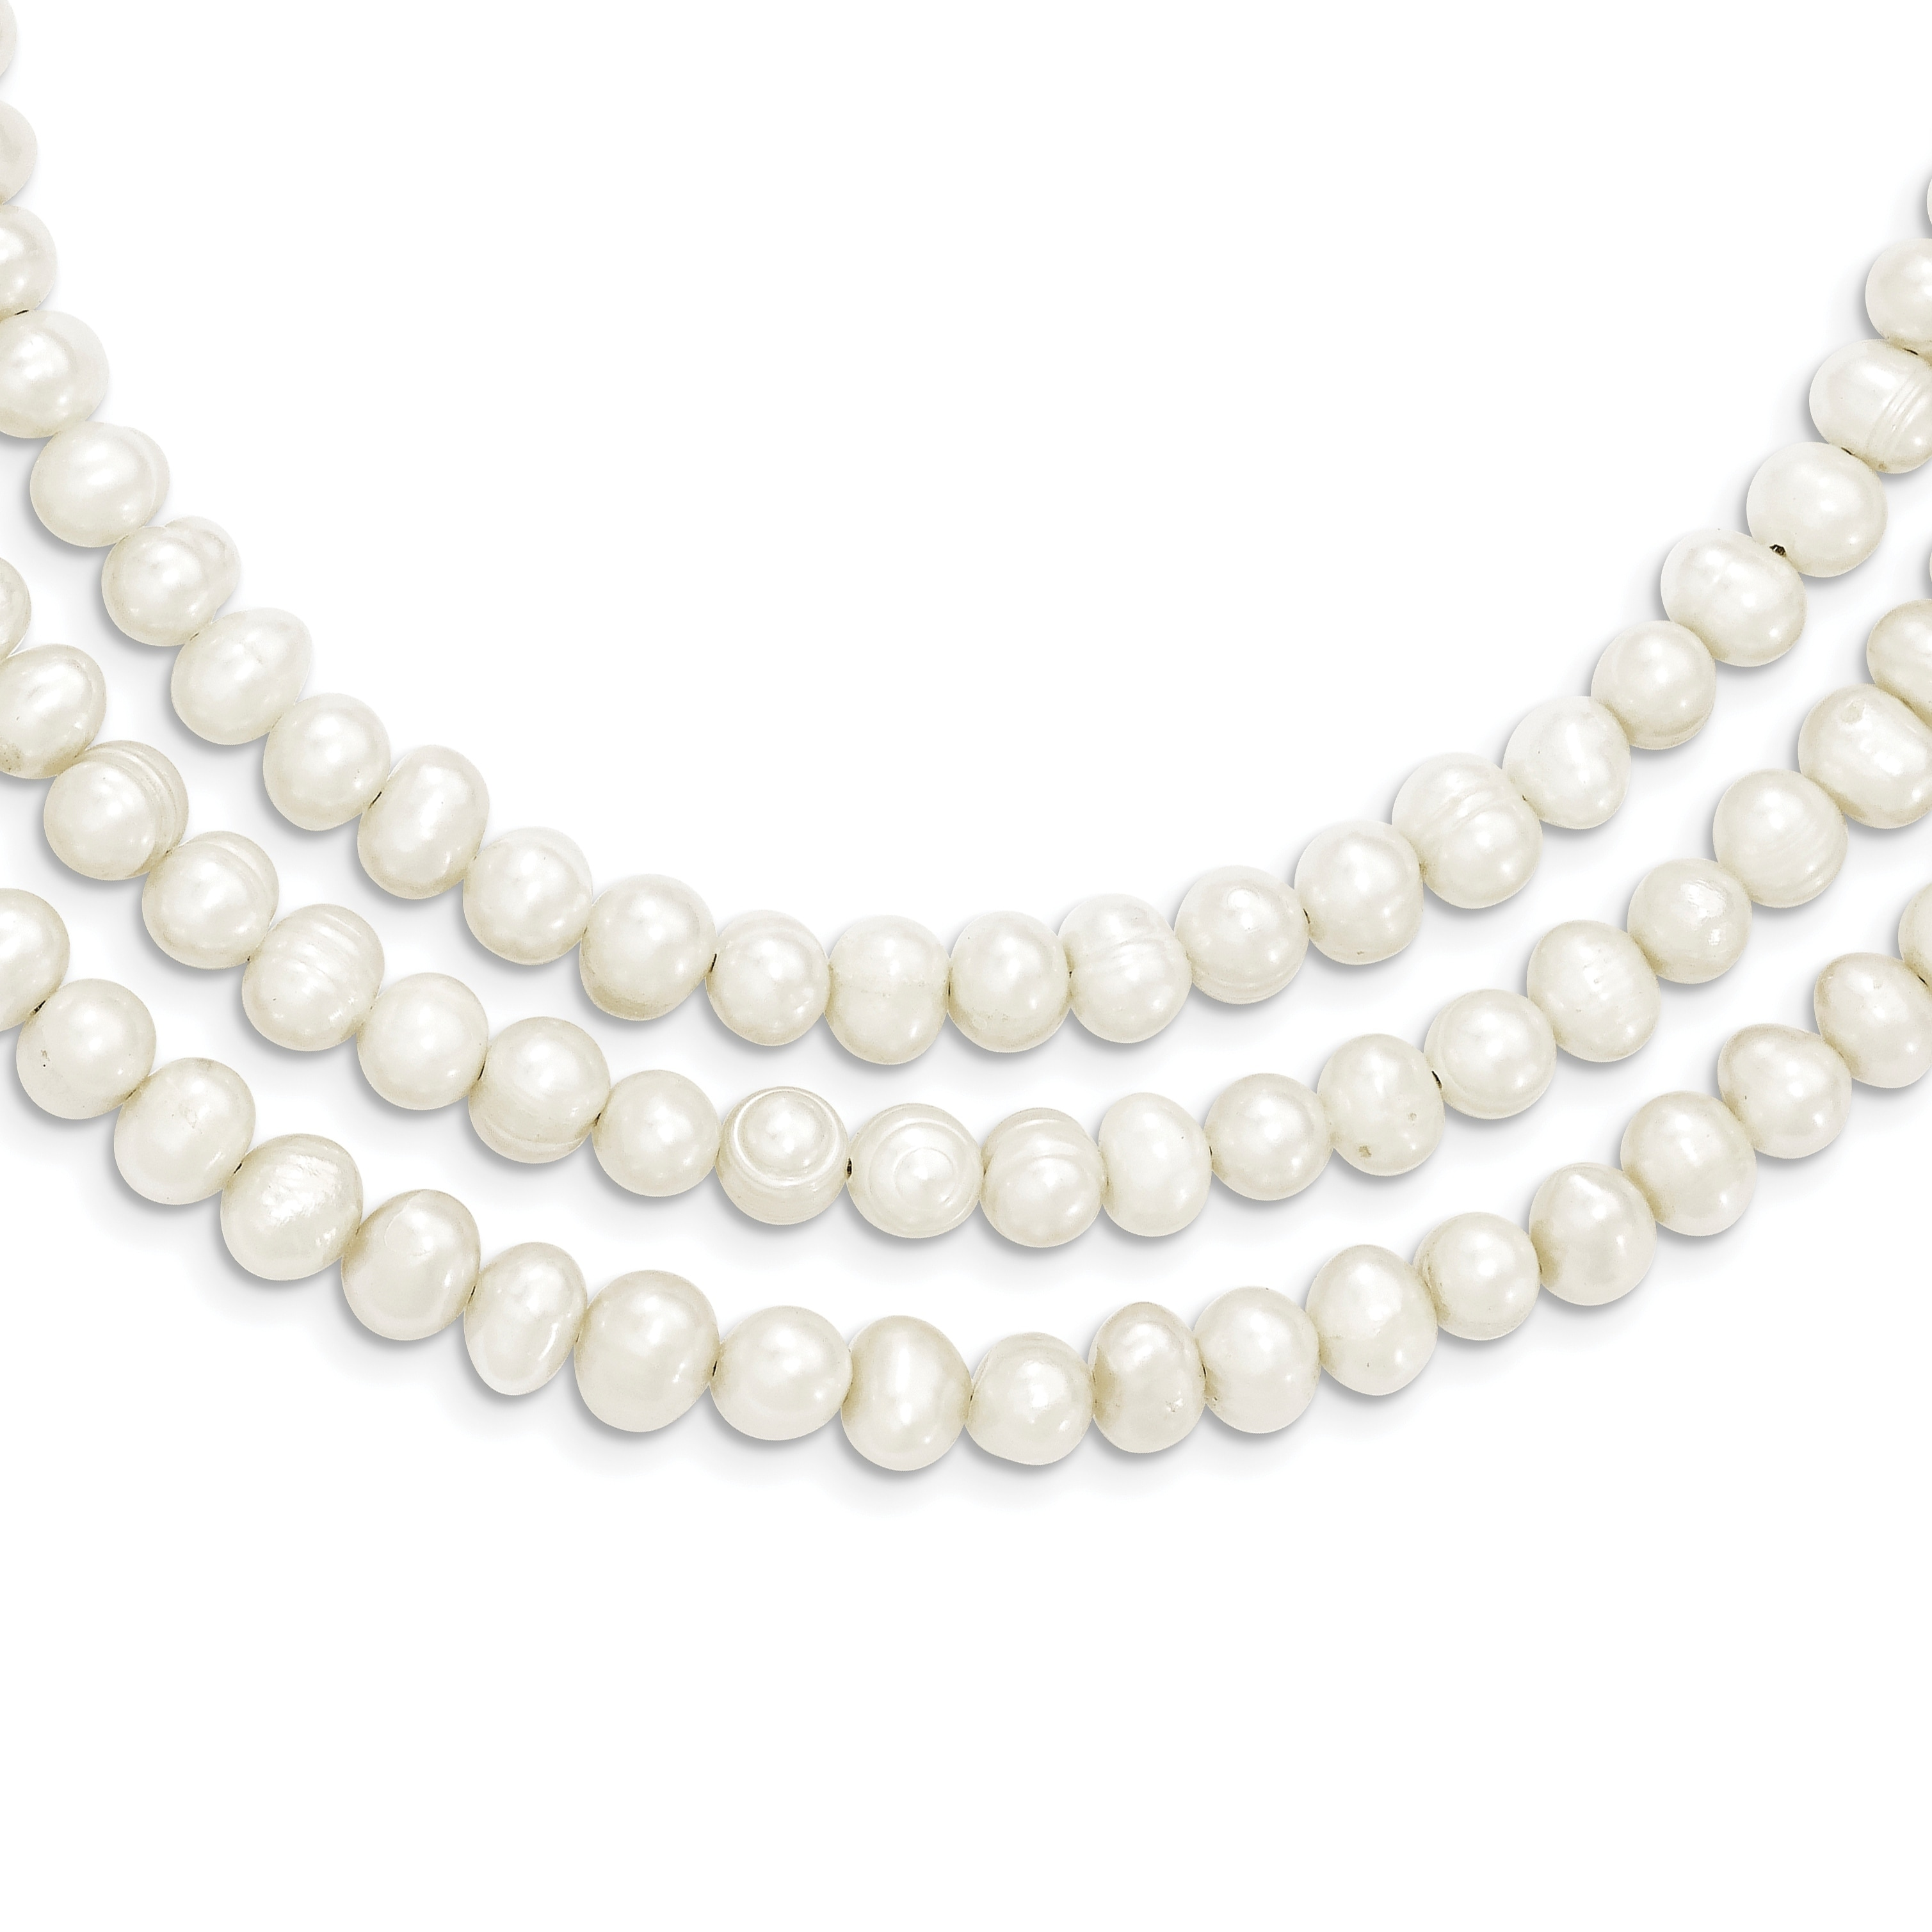 Sterling Silver 3 Strand White Freshwater Cultured Pearl Necklace for Women